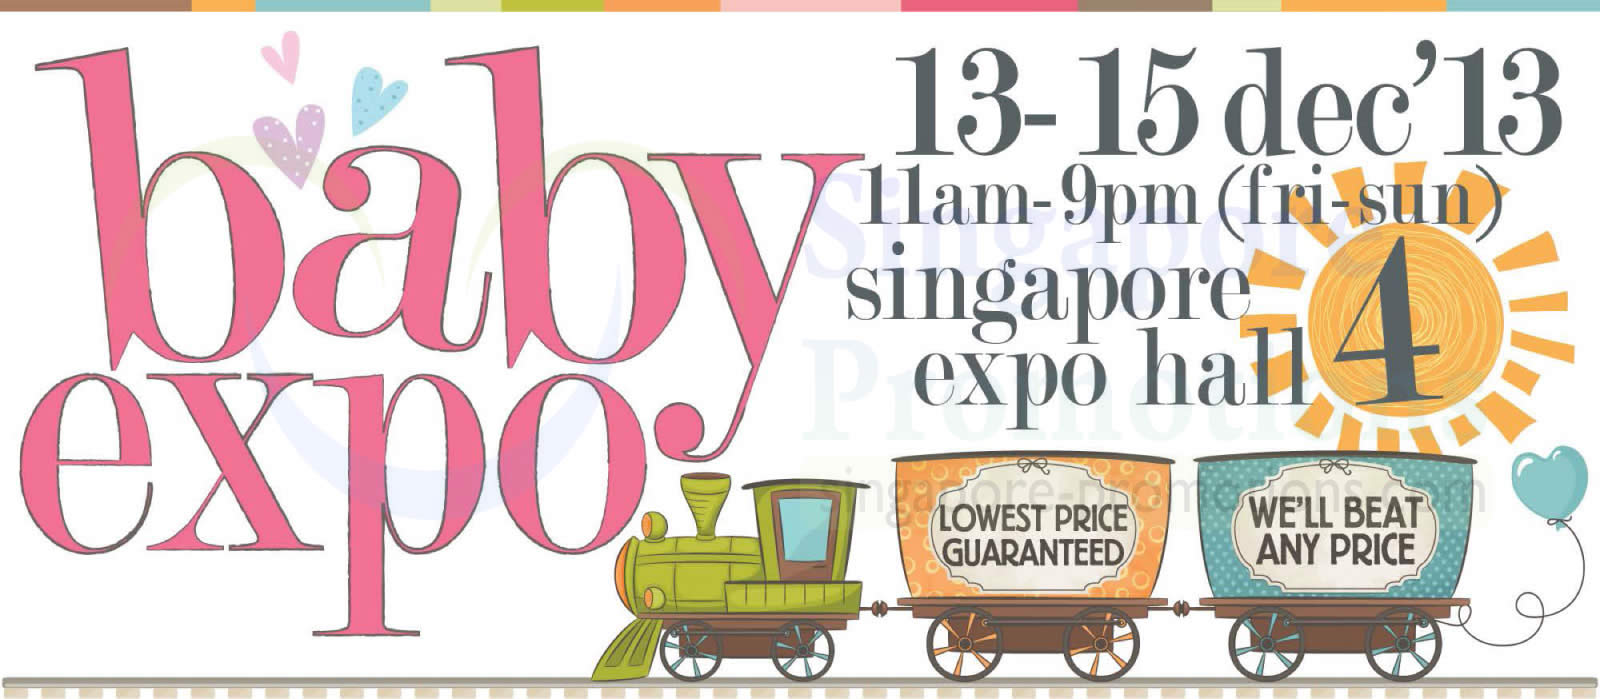 Baby Expo Dec 2013 Event Details